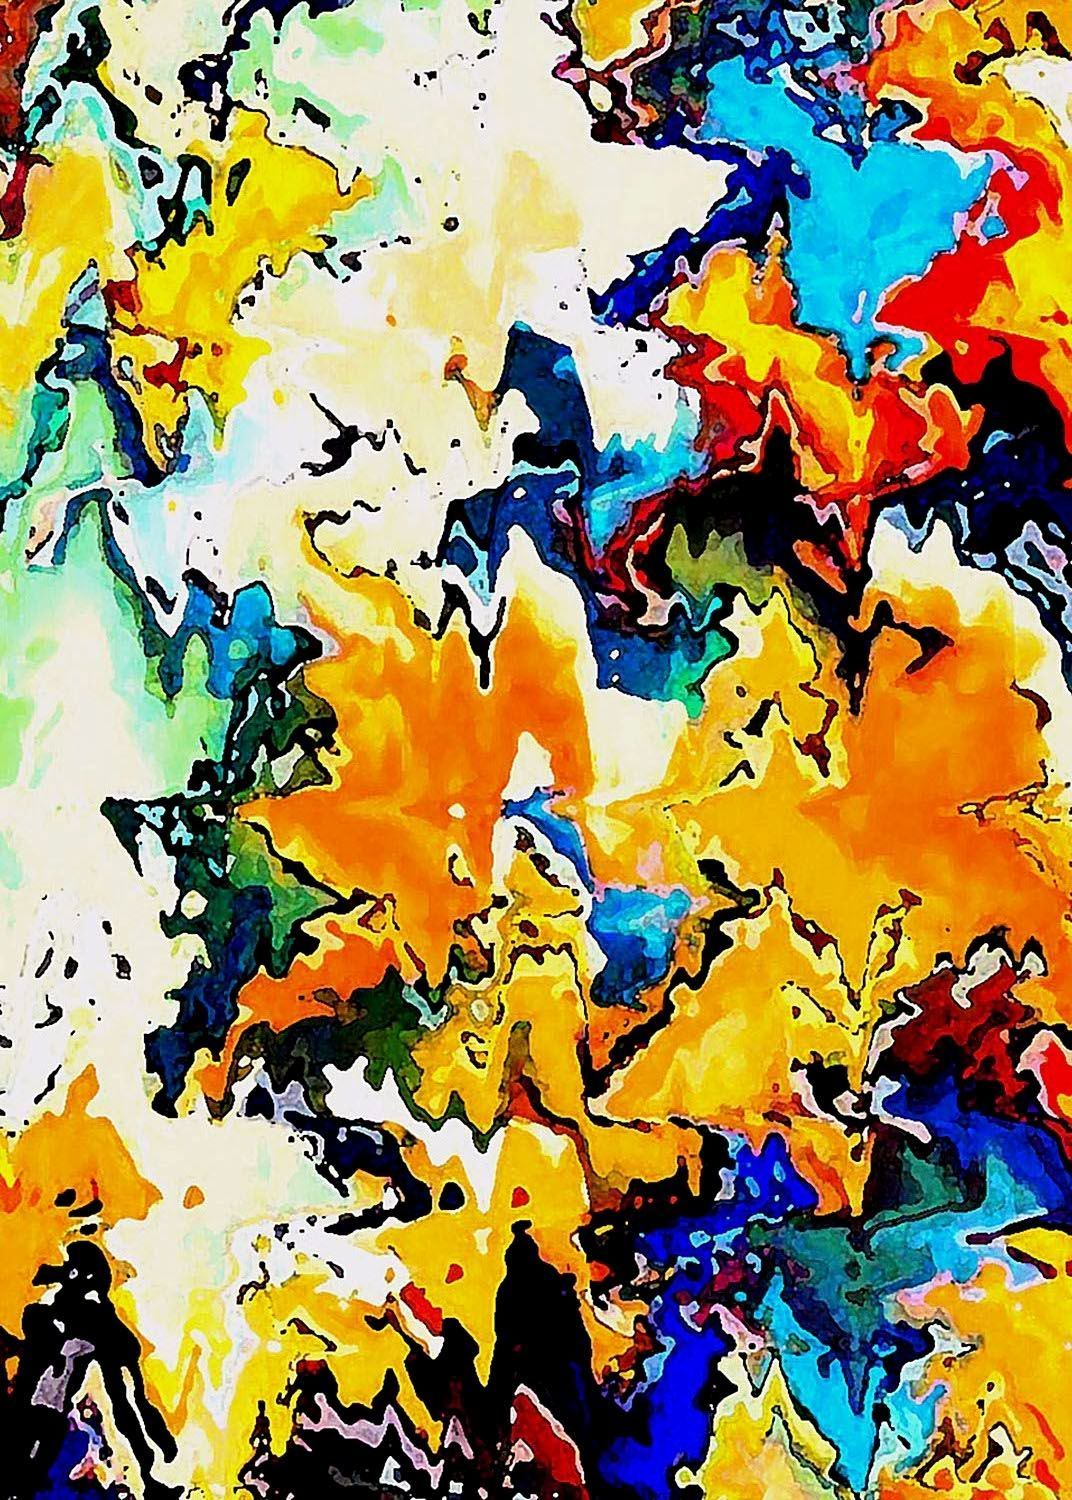 Abstractart colorful background abstract art design by sanae errabie also rh in pinterest